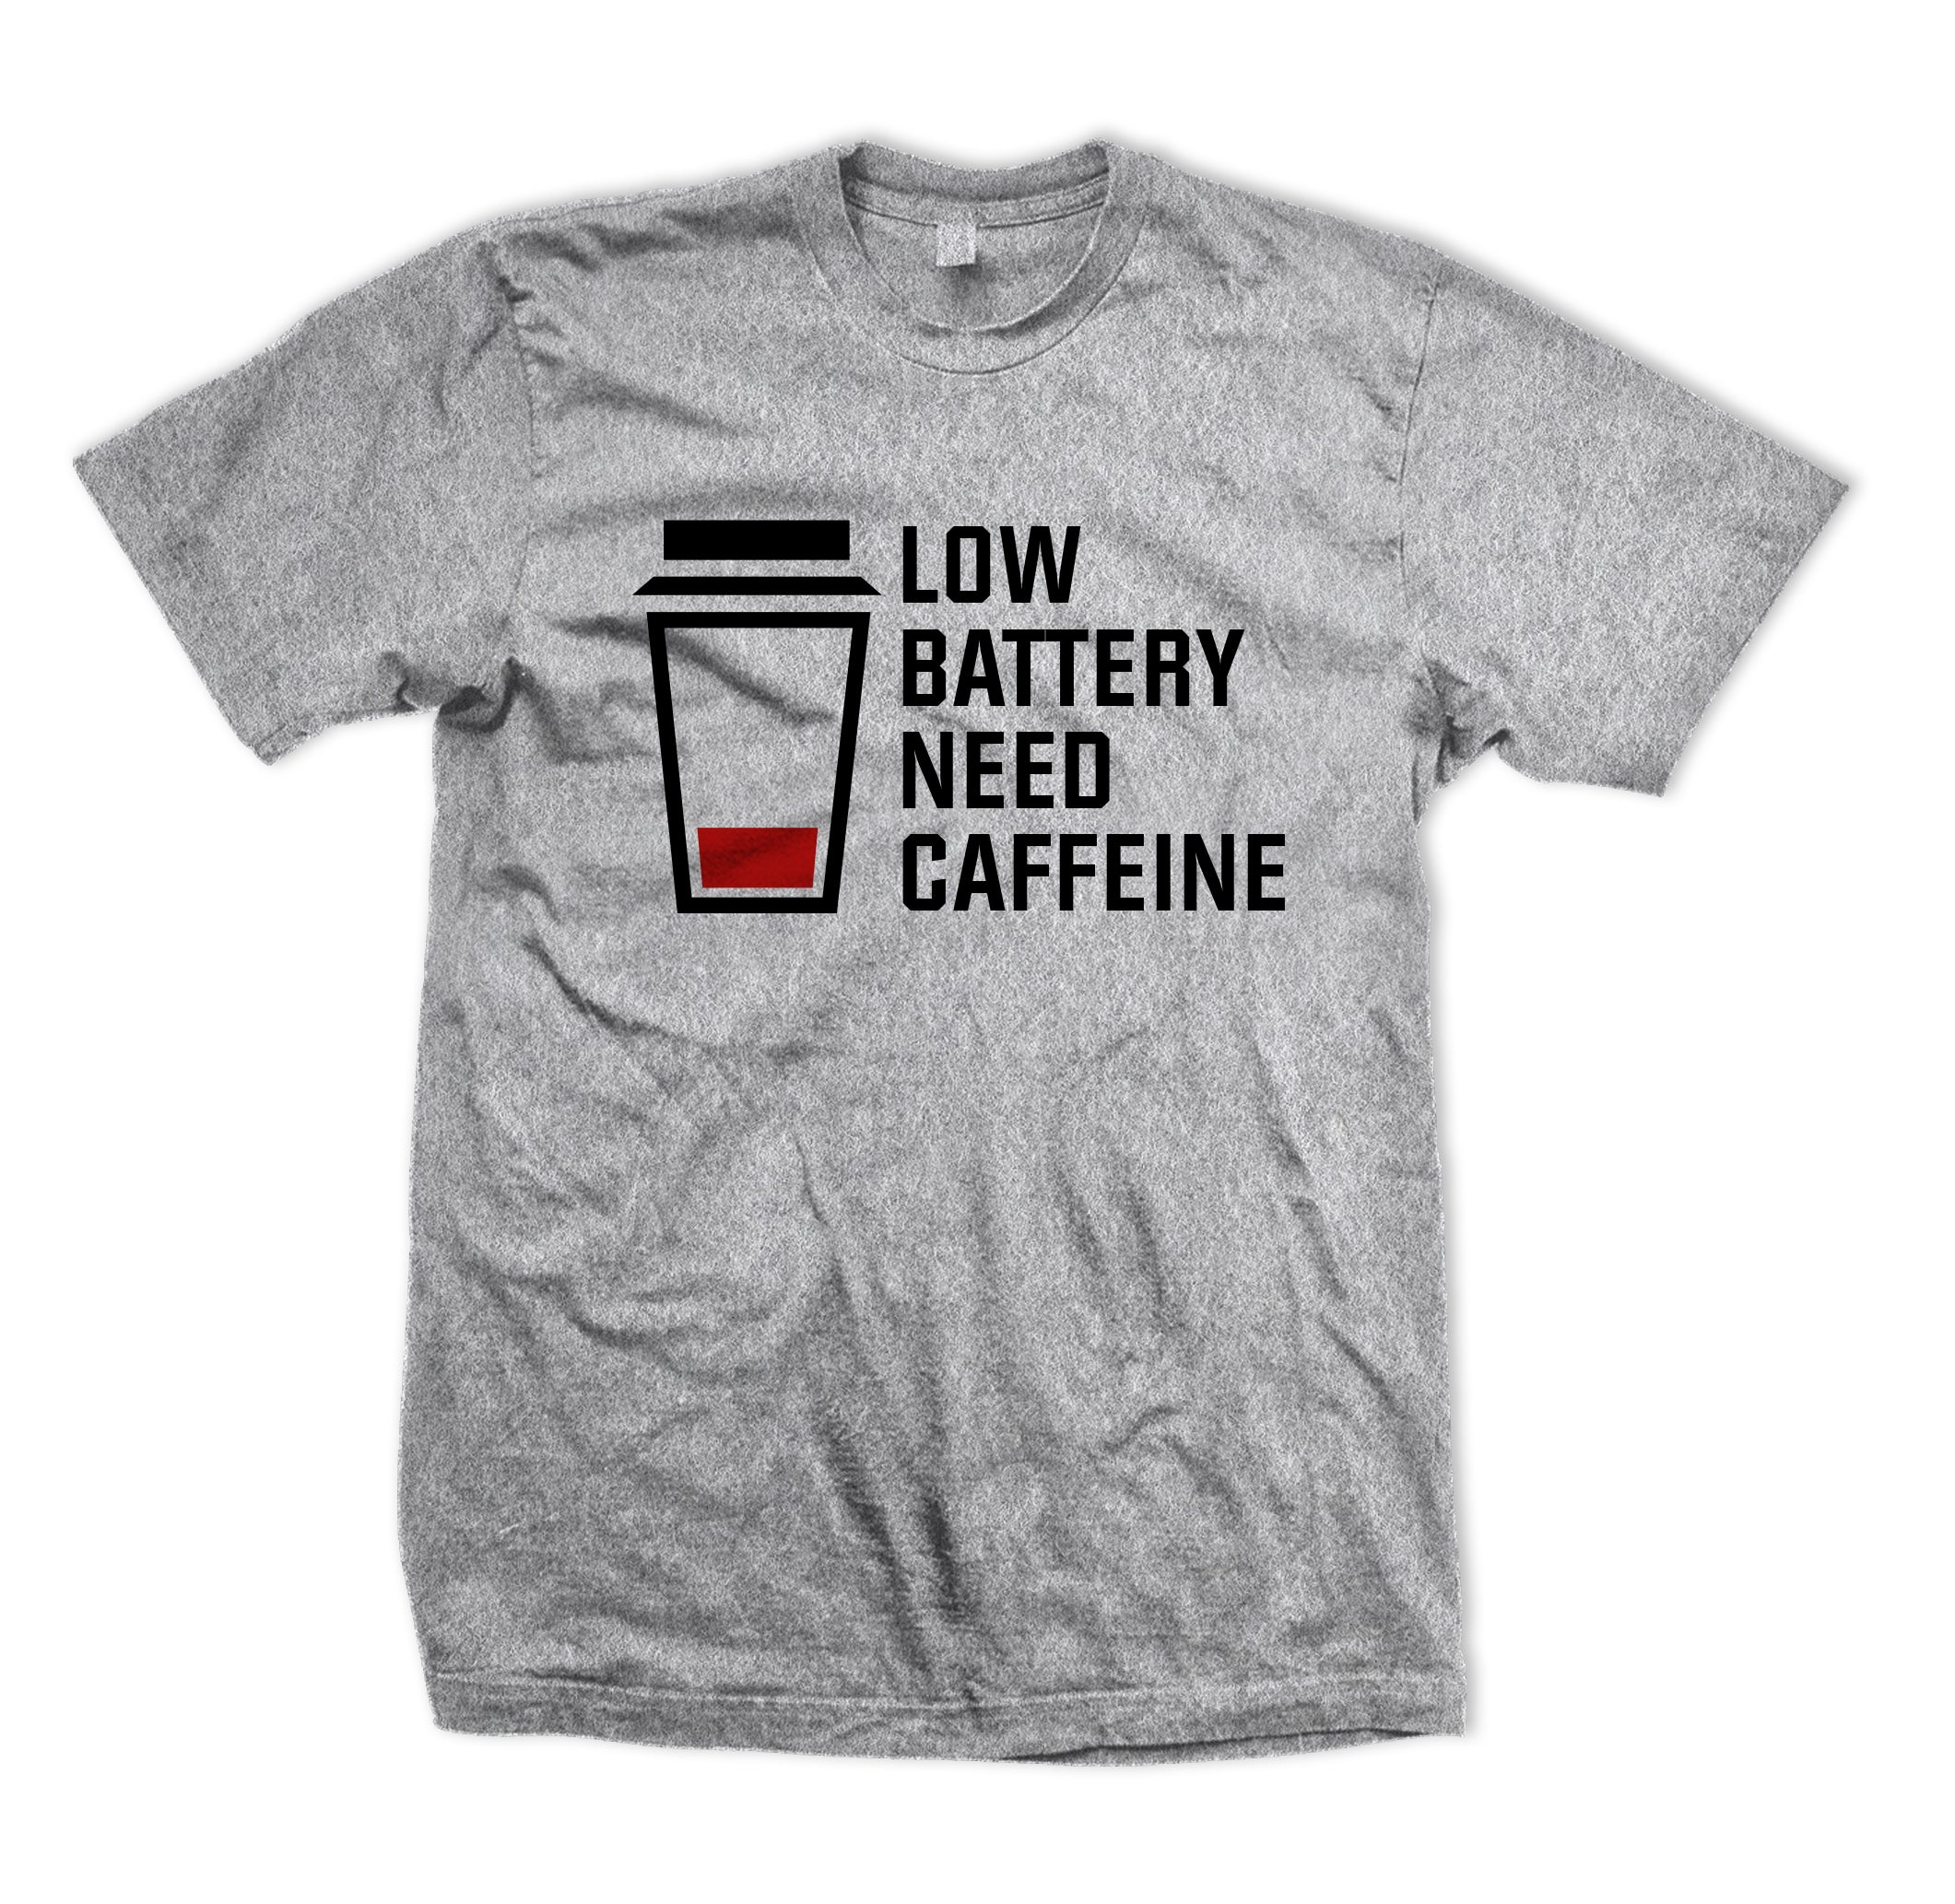 Low Battery Need Caffeine Tee